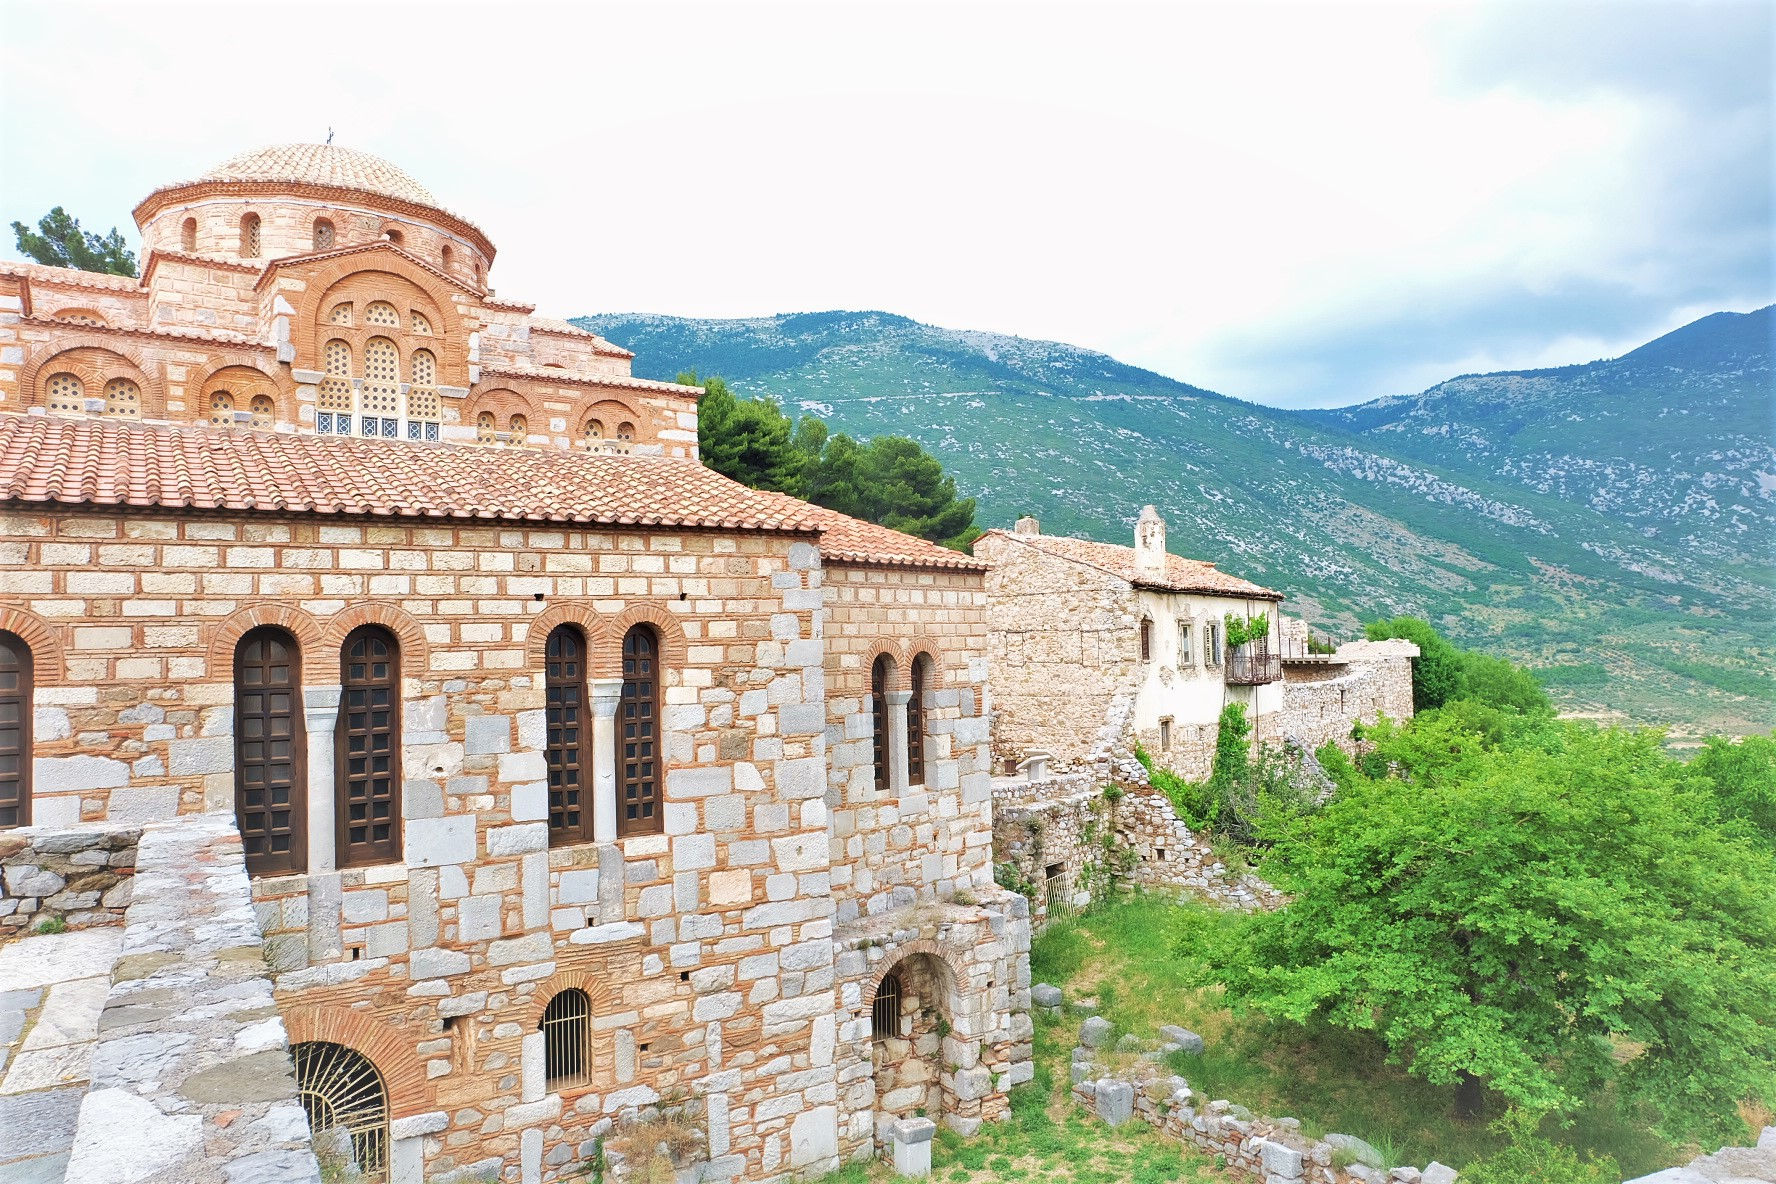 Carry It Like Harry - The Monastry of Hosios Loukas Ὅσιος Λουκᾶς: Greece's Byzantine Jewel